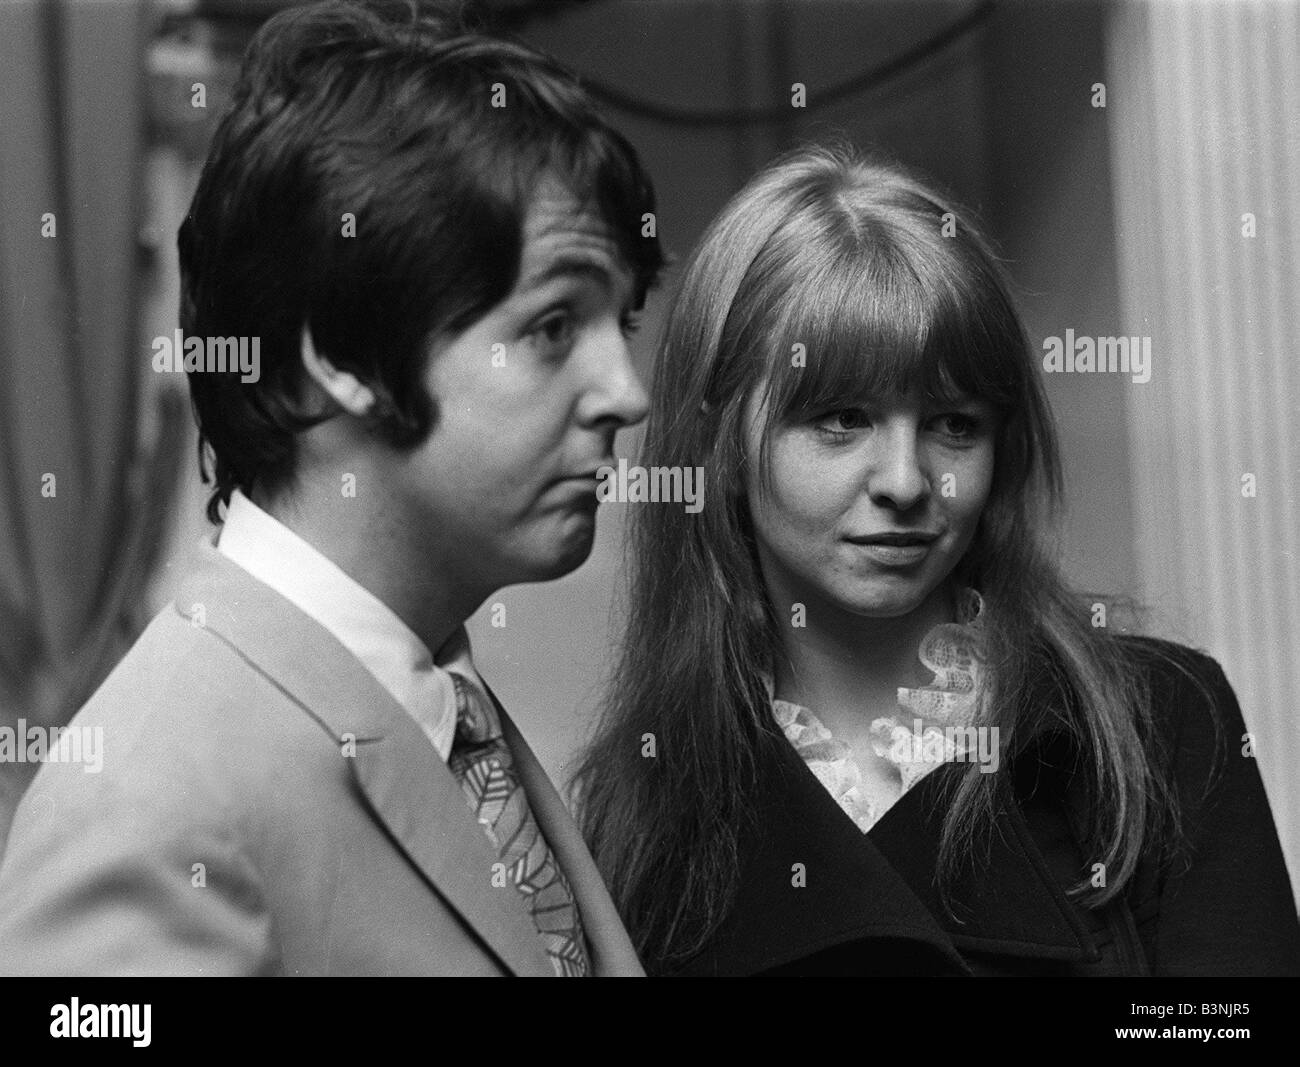 Paul McCartney Of The Pop Group Beatles With Girlfriend Jane Asher January 1968